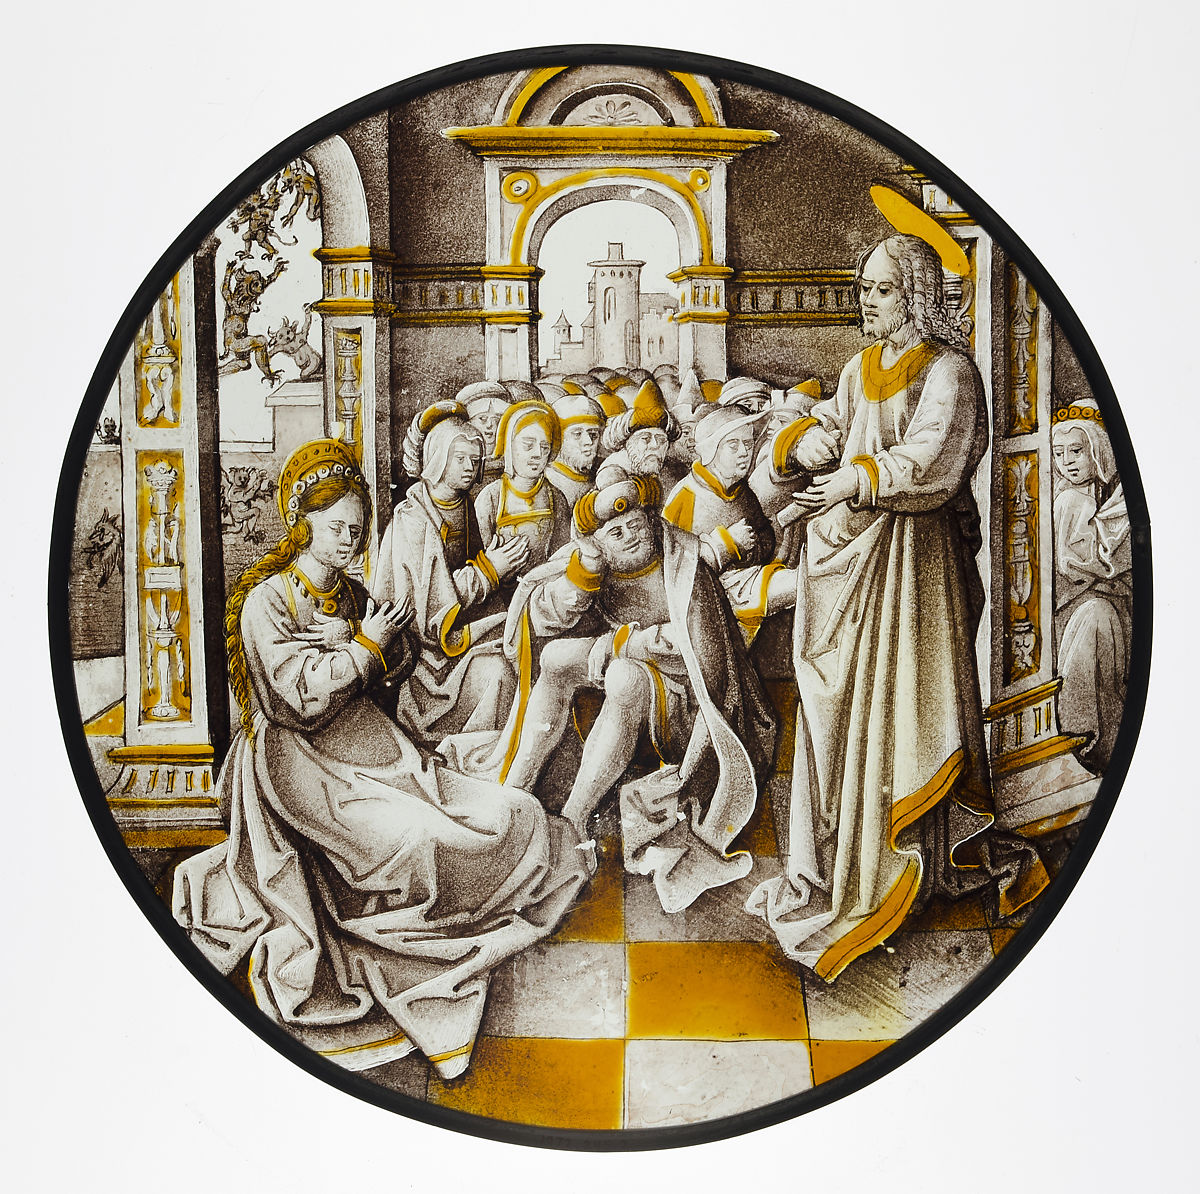 Roundel with Christ and the Adulterous Woman, Style of Pseudo-Ortkens (South Netherlandish, active Antwerp and Brussels, ca. 1500–30), Colorless glass, vitreous paint and silver stain, South Netherlandish